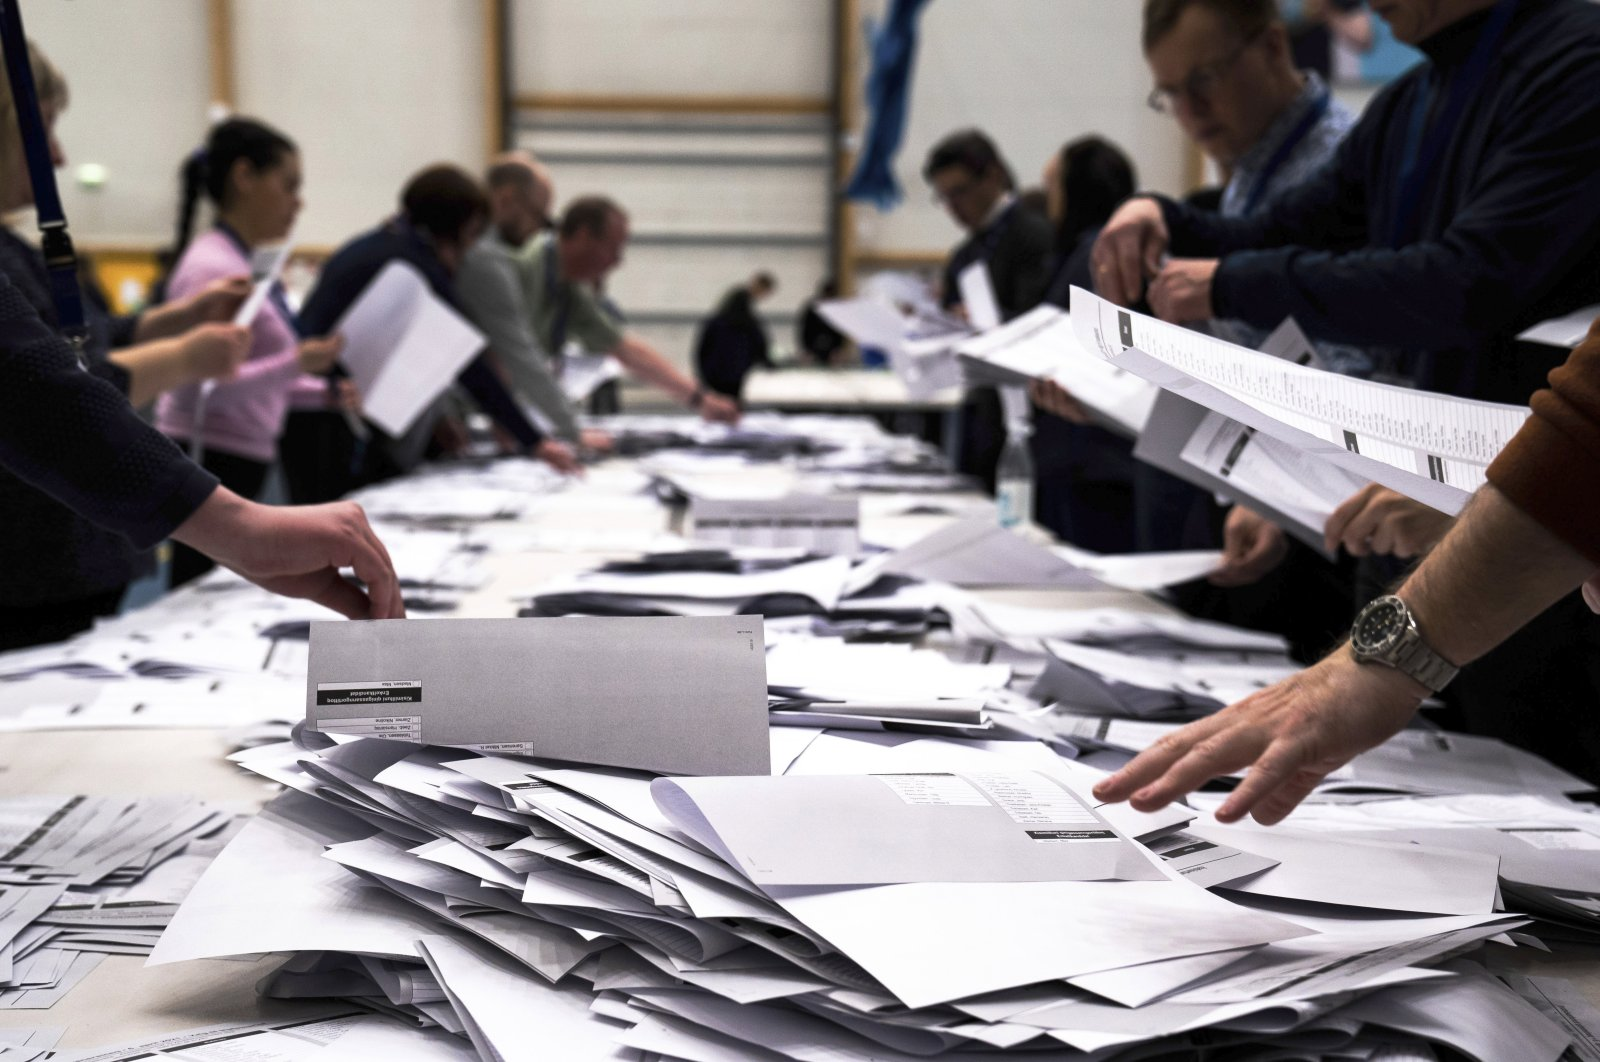 Electoral workers count ballots in a parliament election in Nuuk, Denmark, April 6, 2021. (AP Photo)